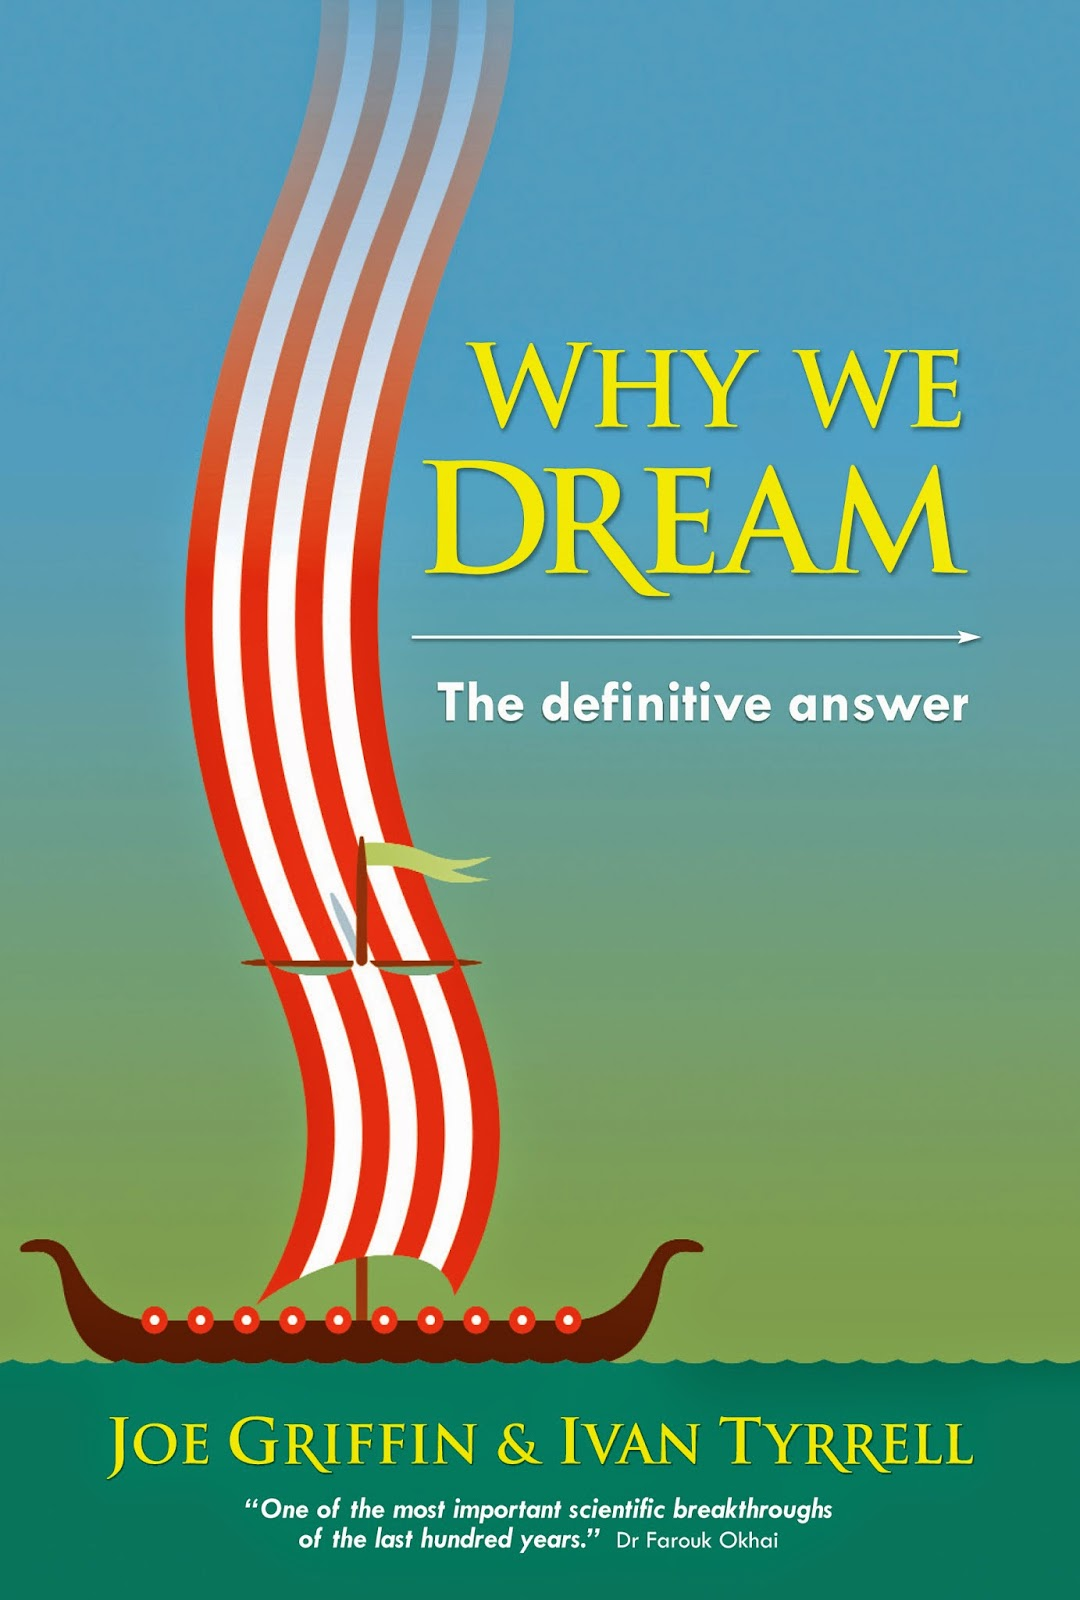 http://www.humangivens.com/publications/why-we-dream2.html